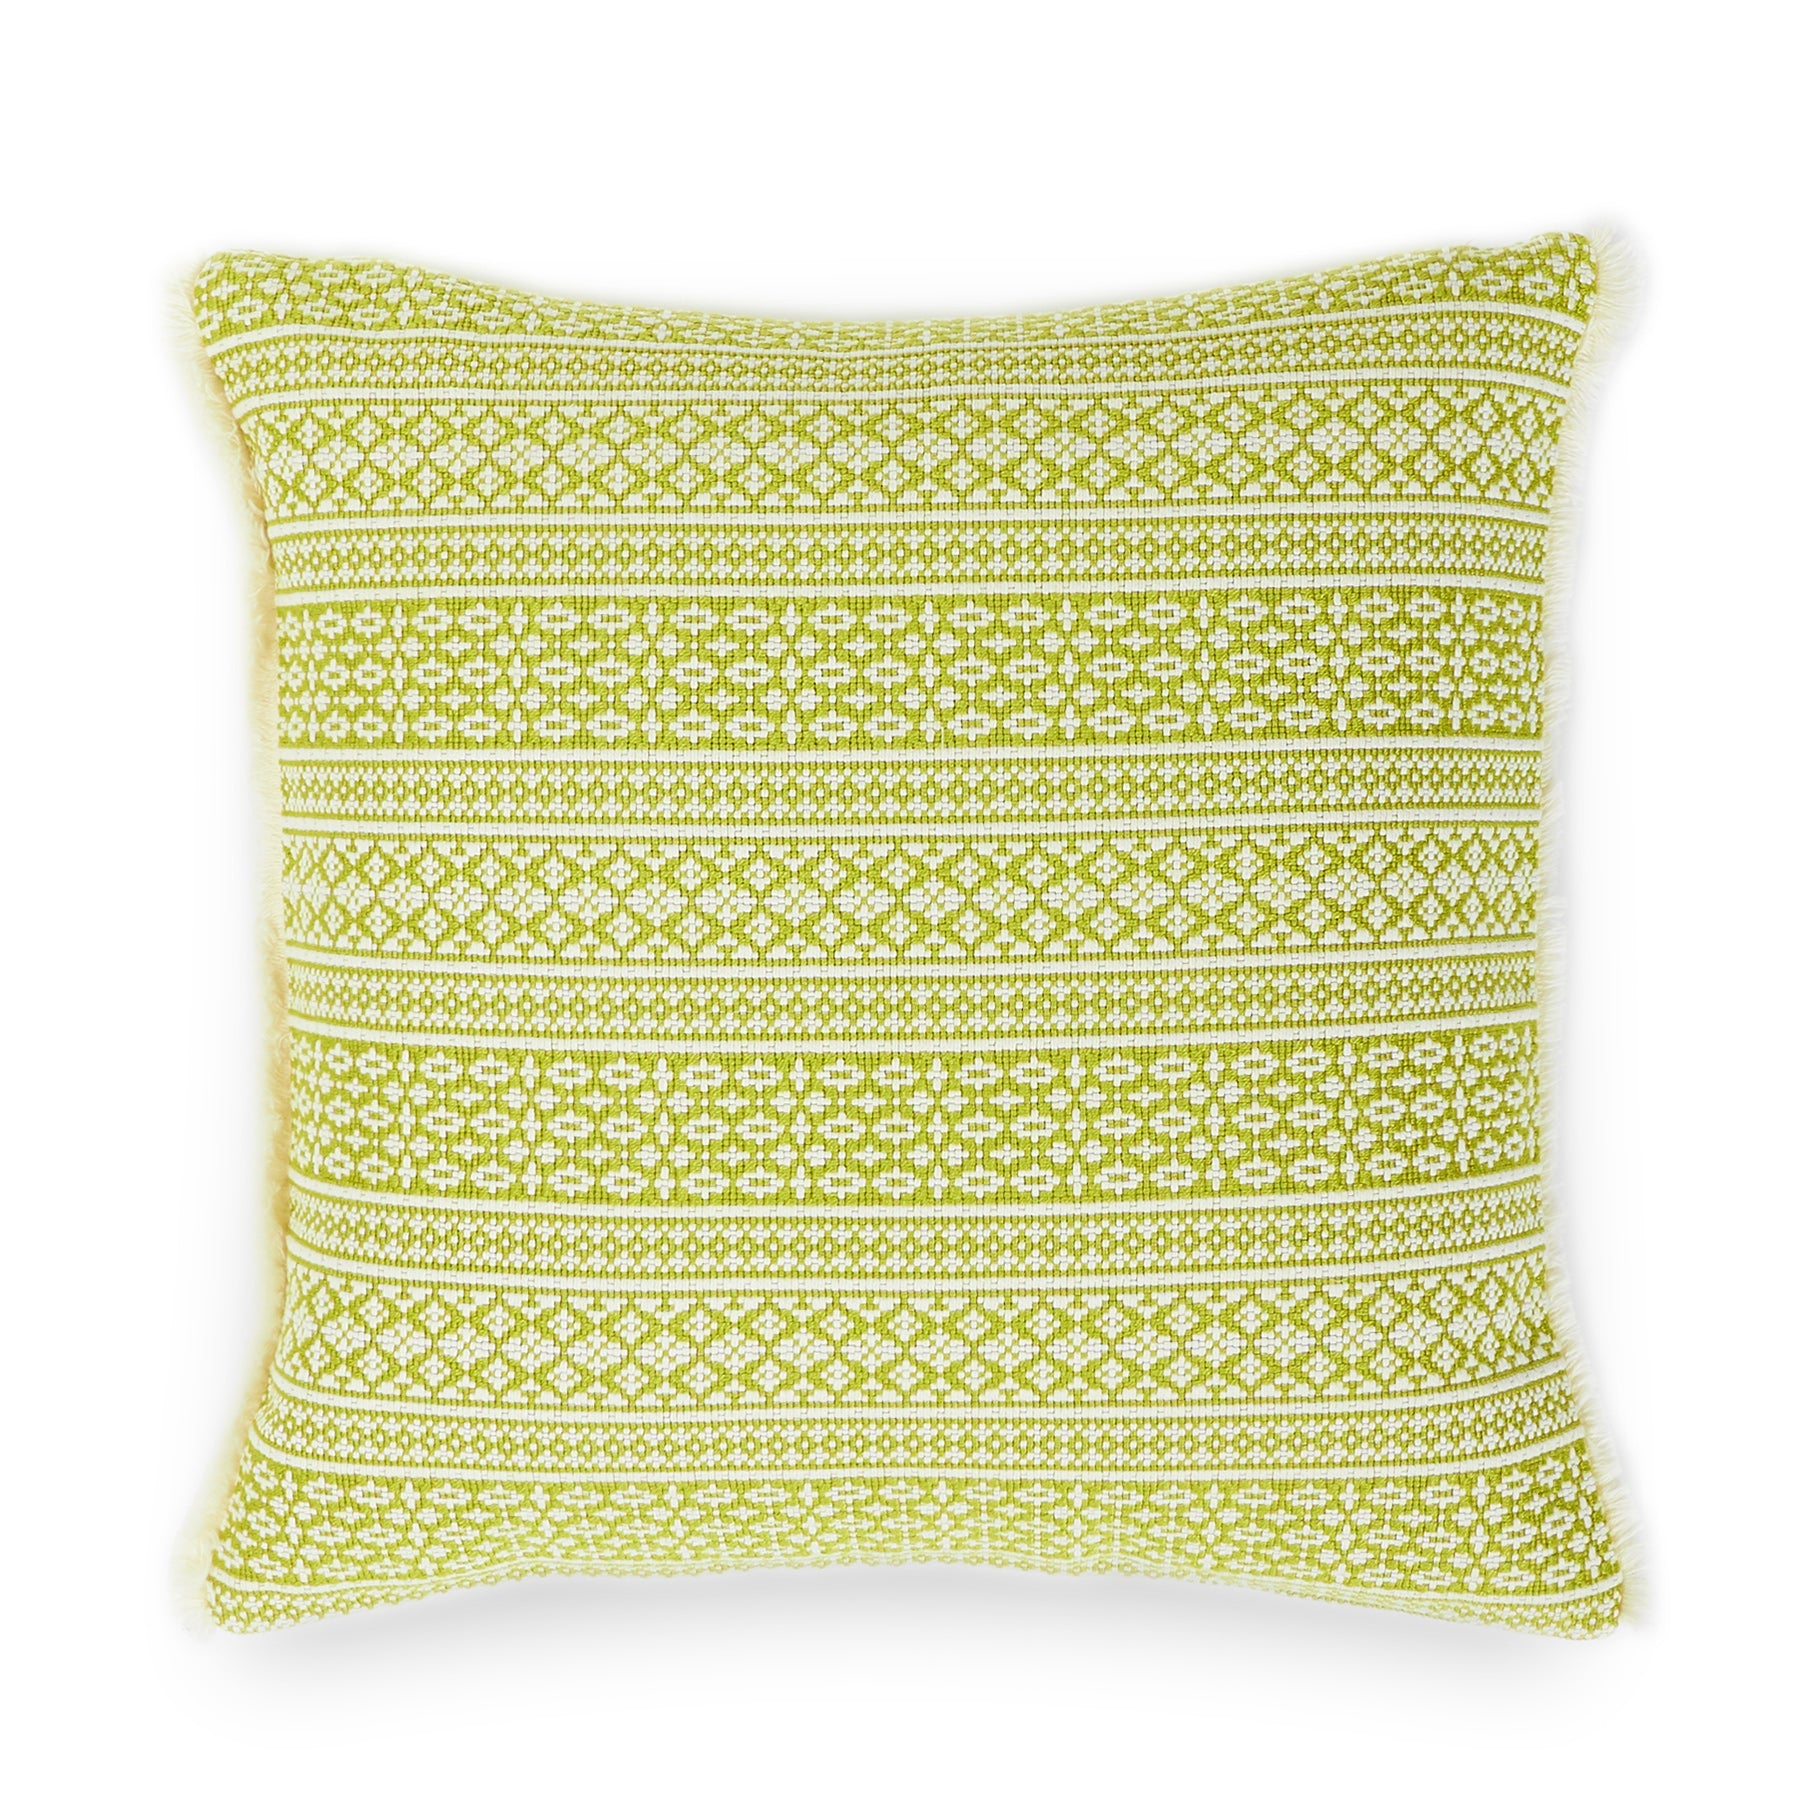 Stitched Pillow in Sweet Basil Zoom Image 1